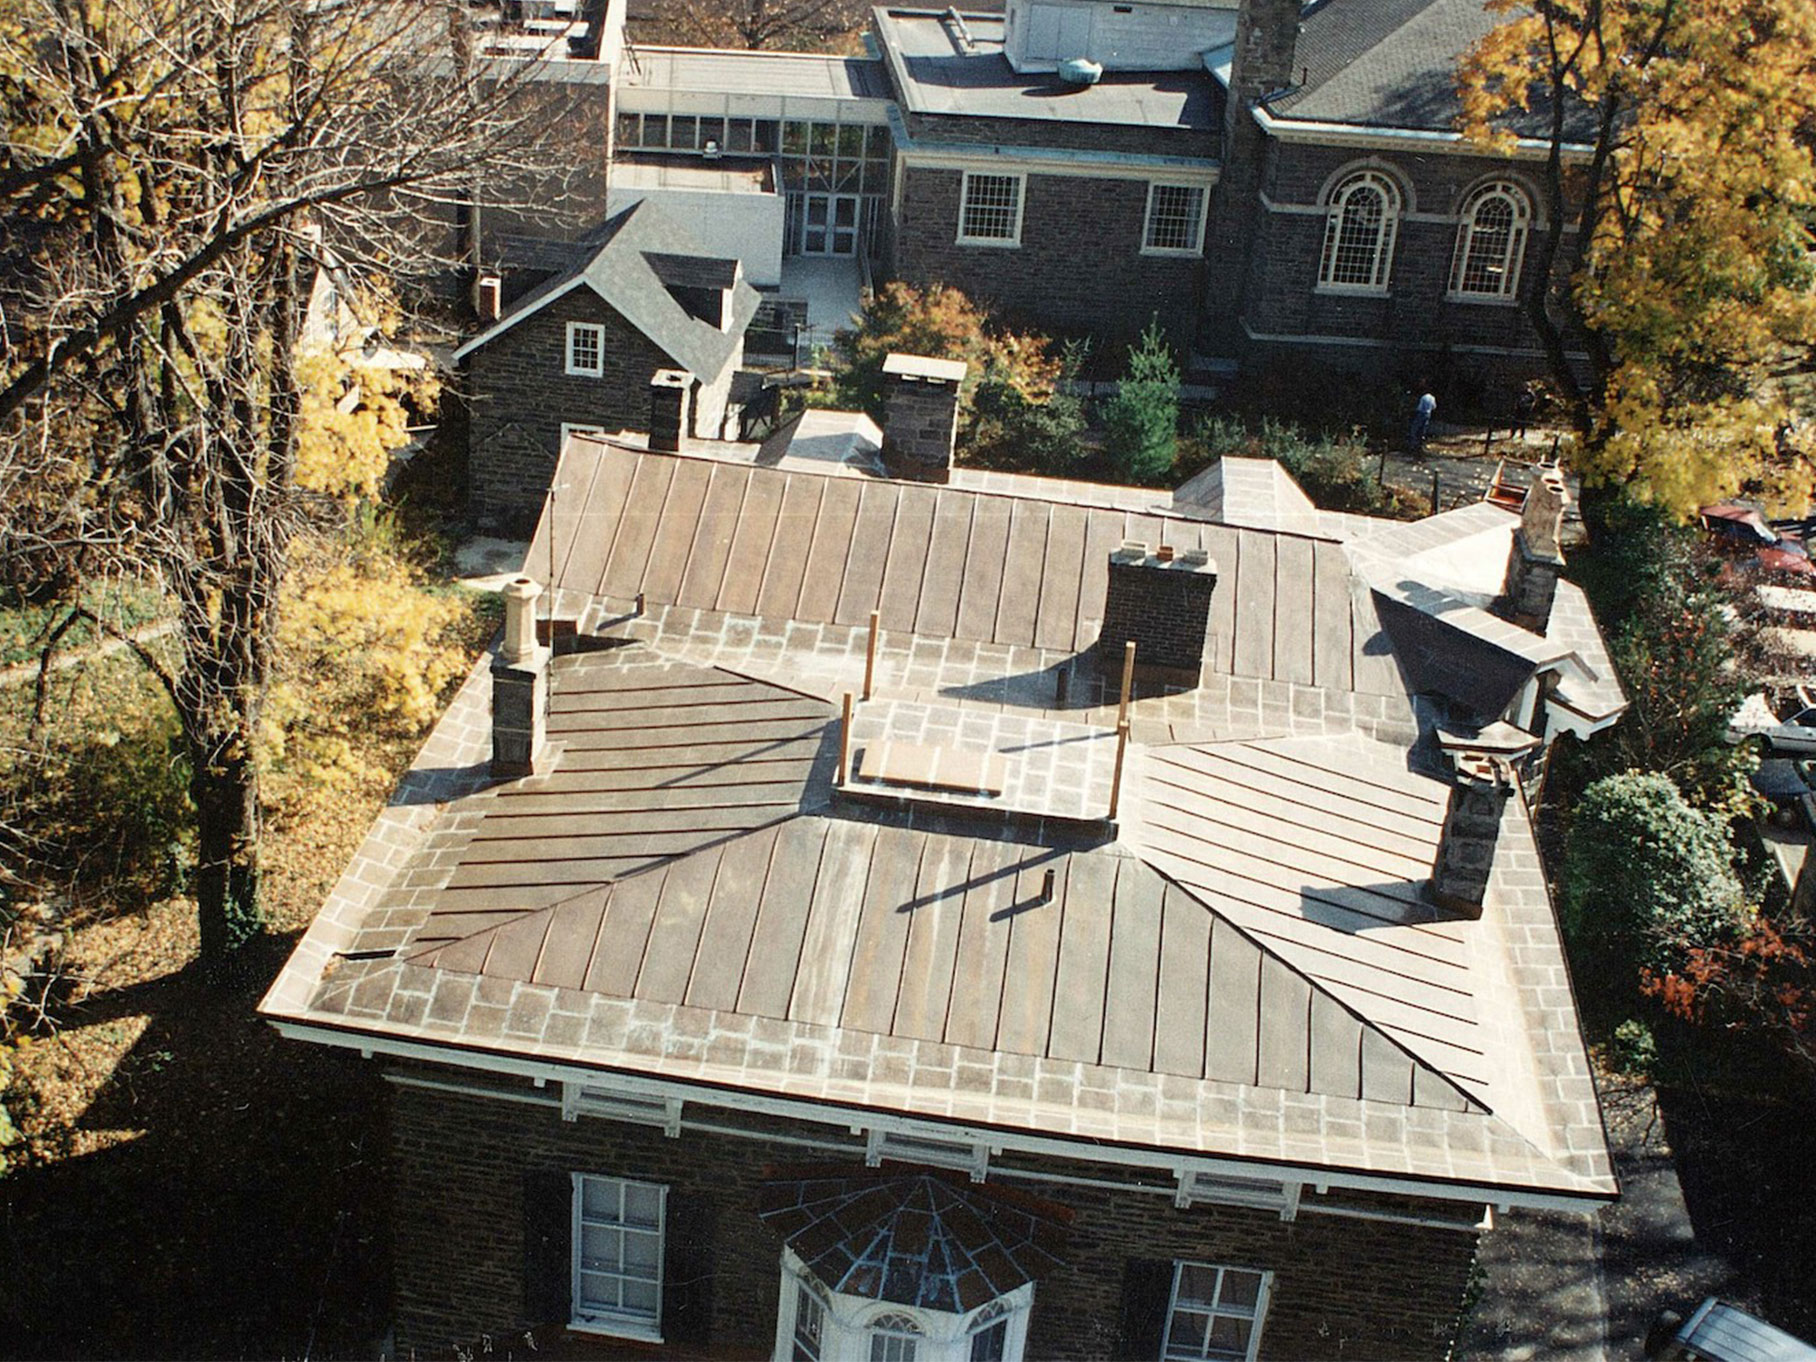 Metal Roofing Commercial Roof Services Russell Roofing And Exterior